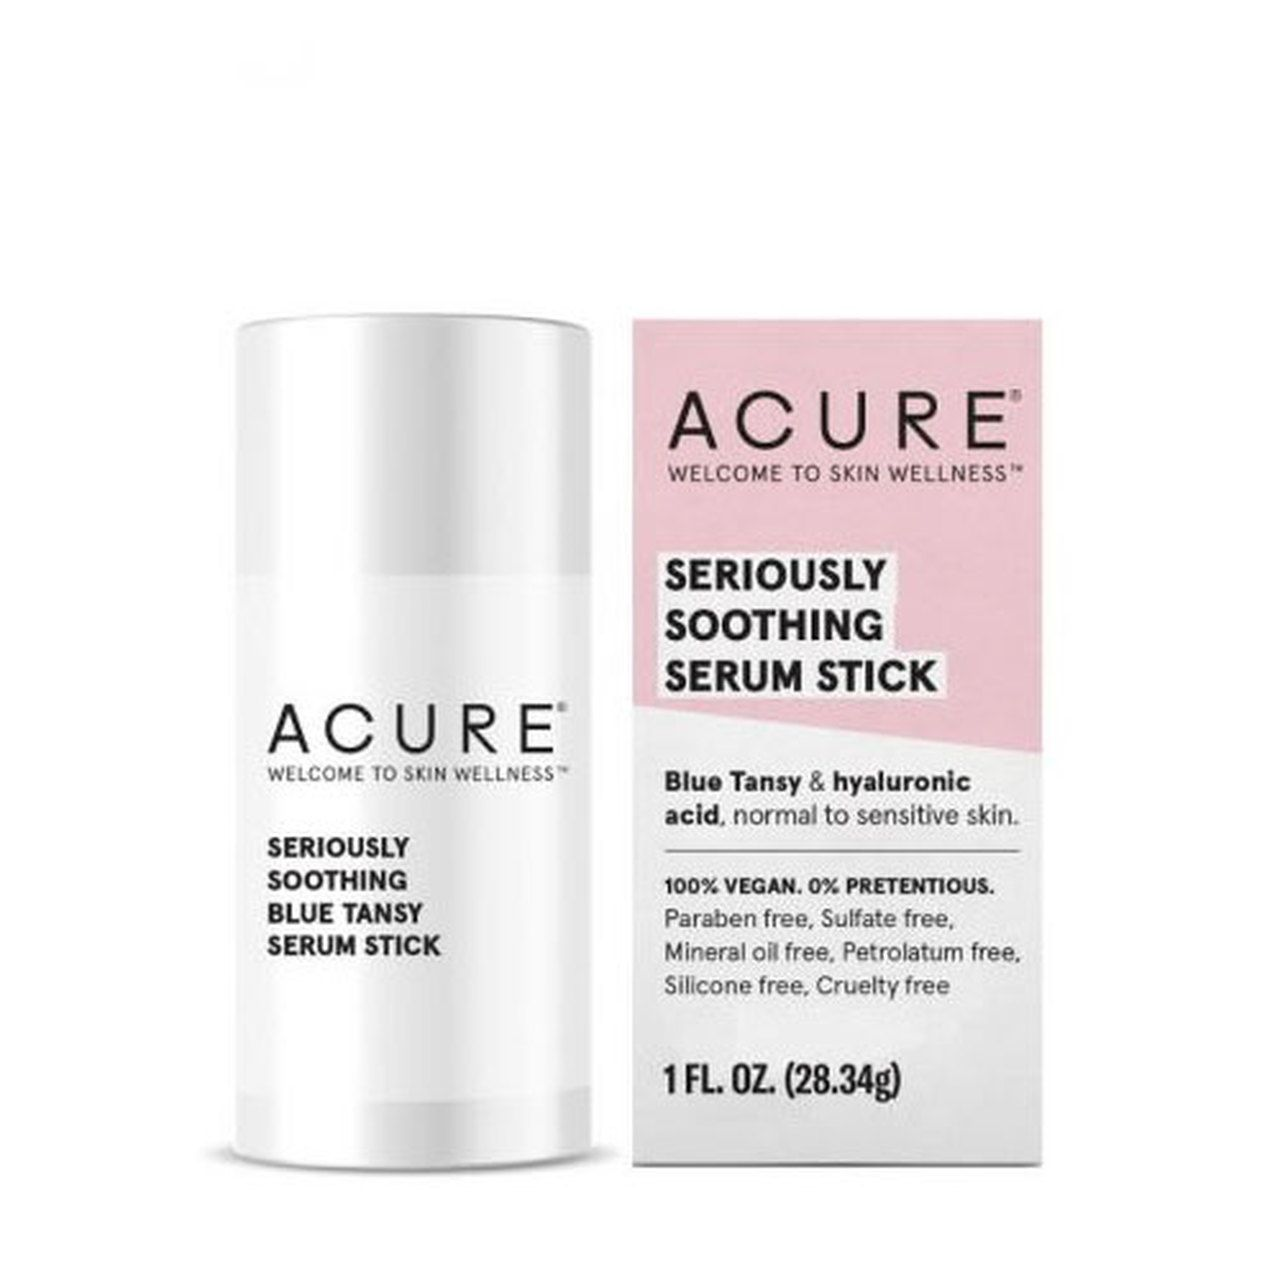 Acure Seriously Soothing Serum Stick